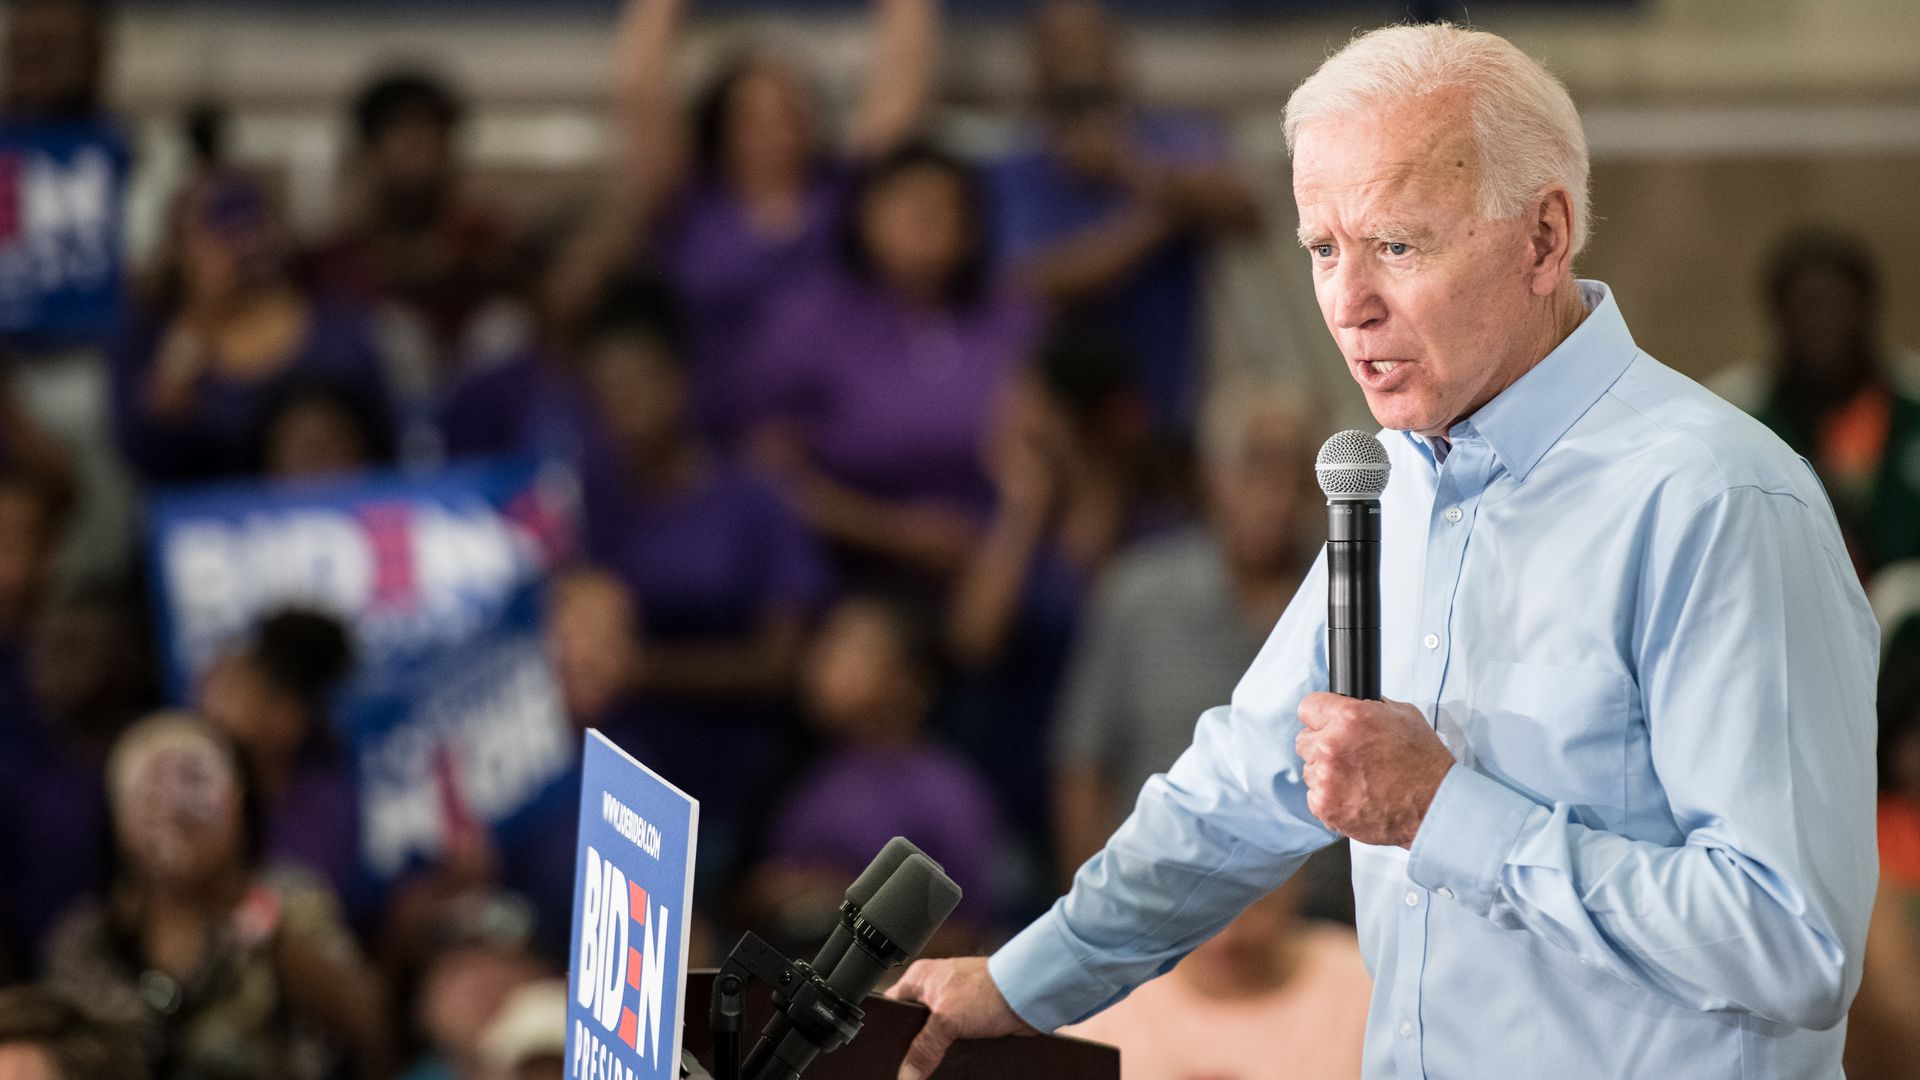 Former Vice President Joe Biden says Jim Crow laws are creeping back in.